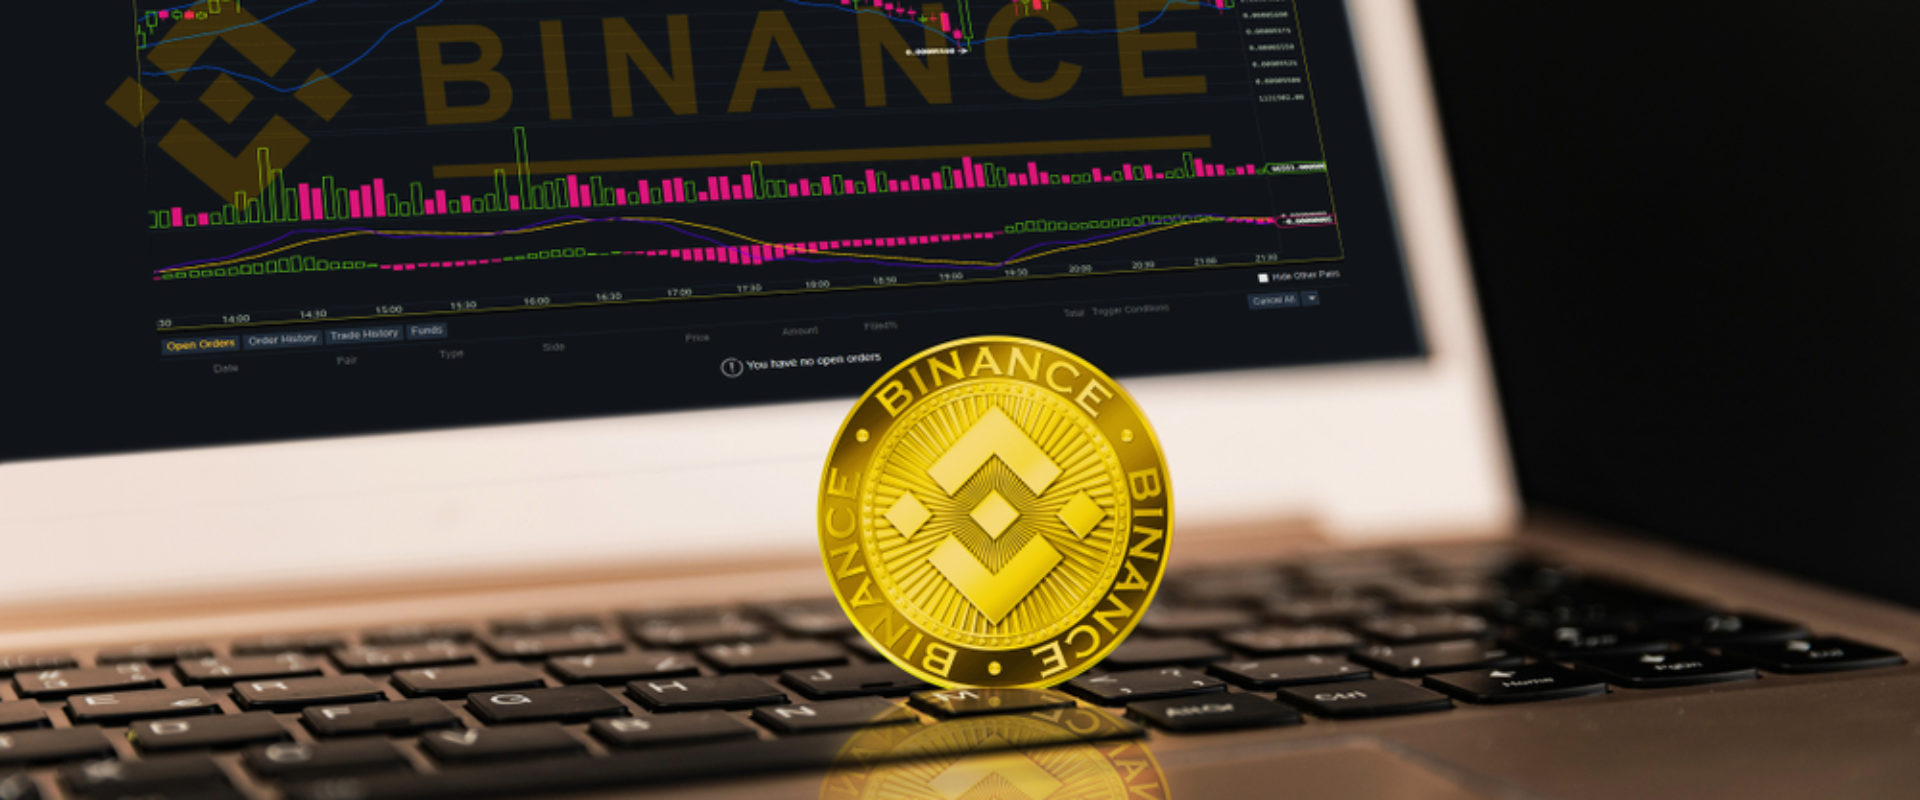 If eBay Rumor is True, Binance Coin (BNB) could double to $40